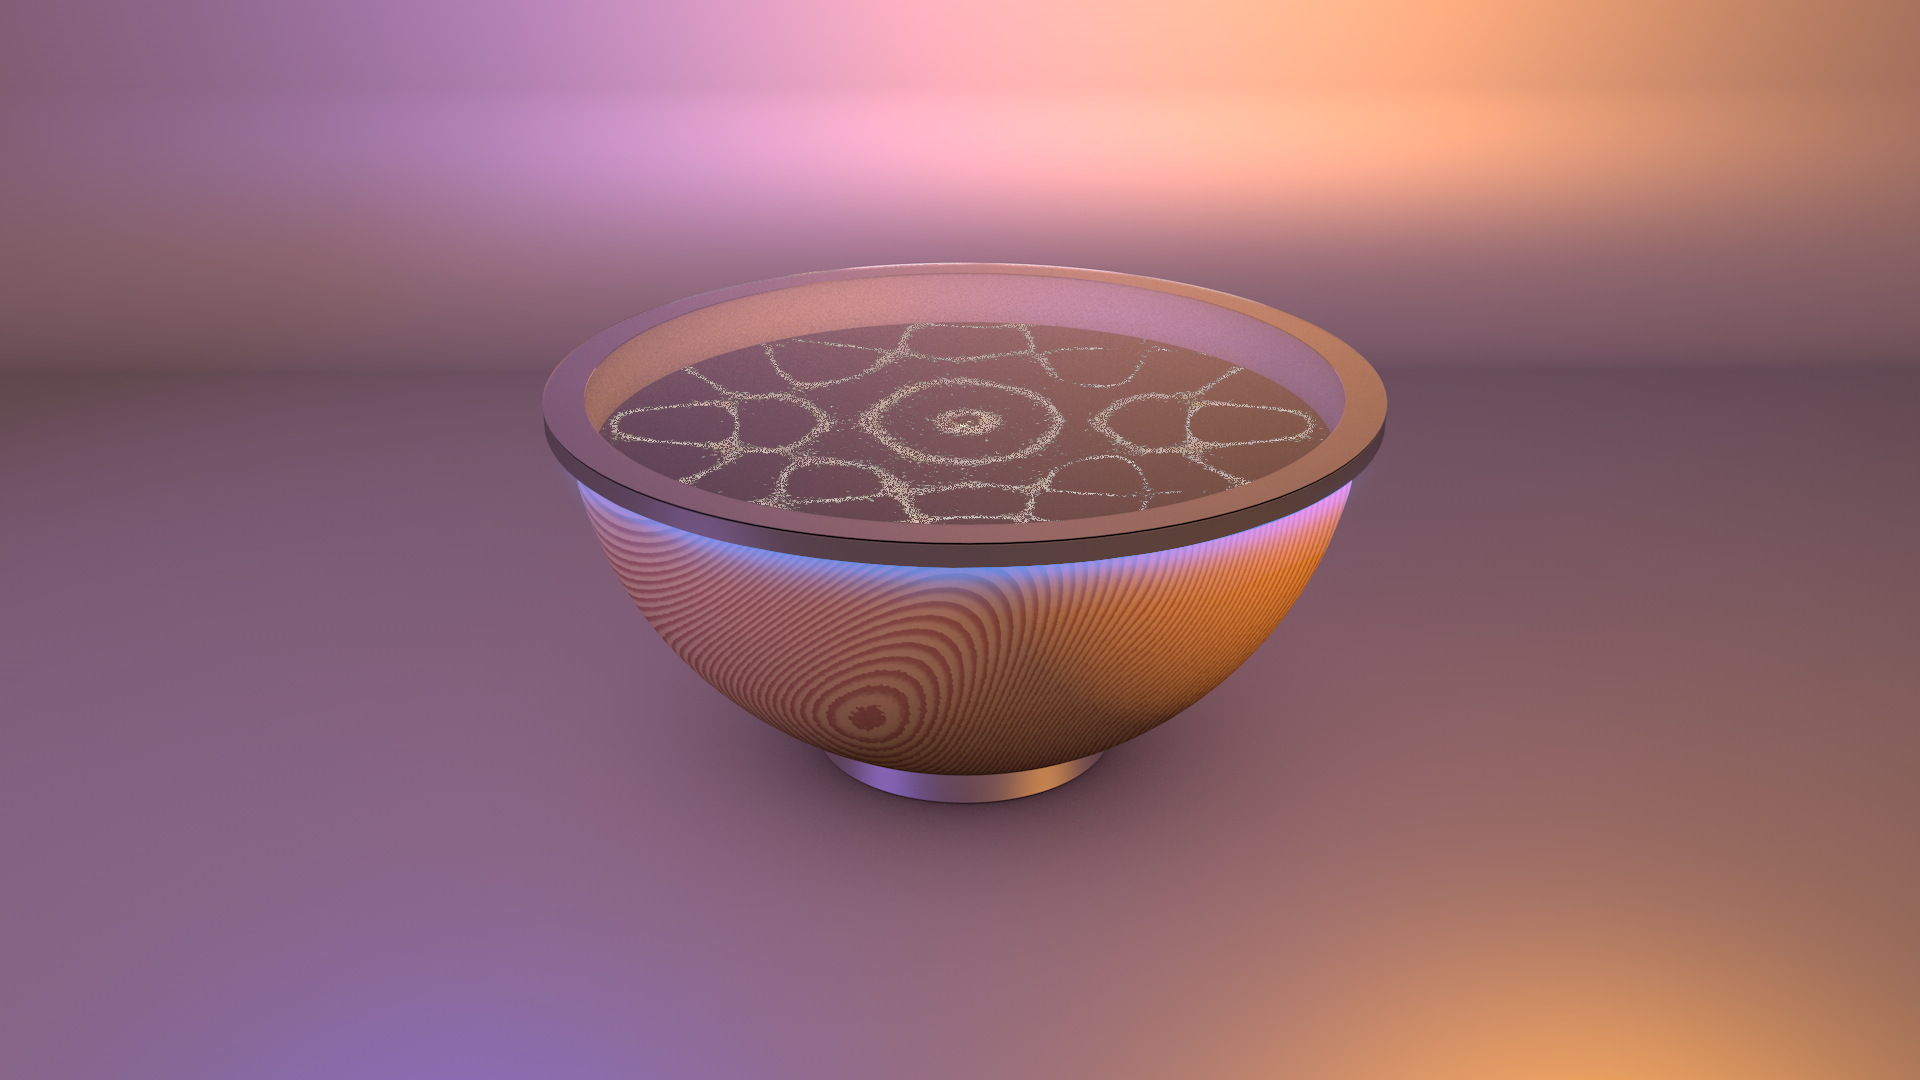 A wooden bowl product with glass on top